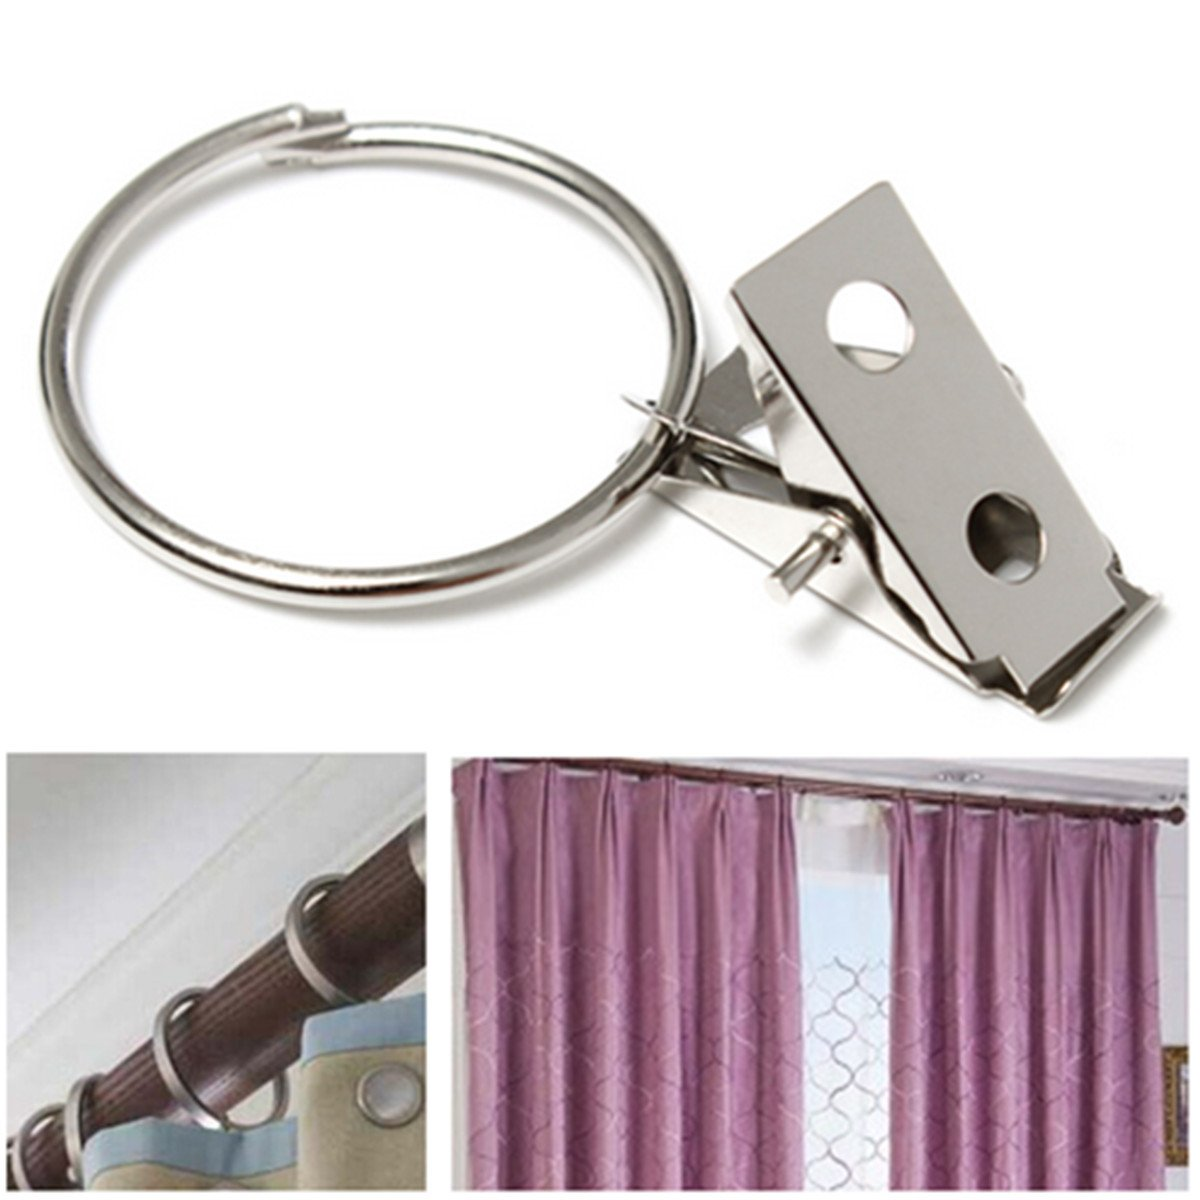 10pcs Metal Hooks Window Curtain Rod Clip Drapery Clips Rings In Decorative Accessories From Home Garden On Aliexpress